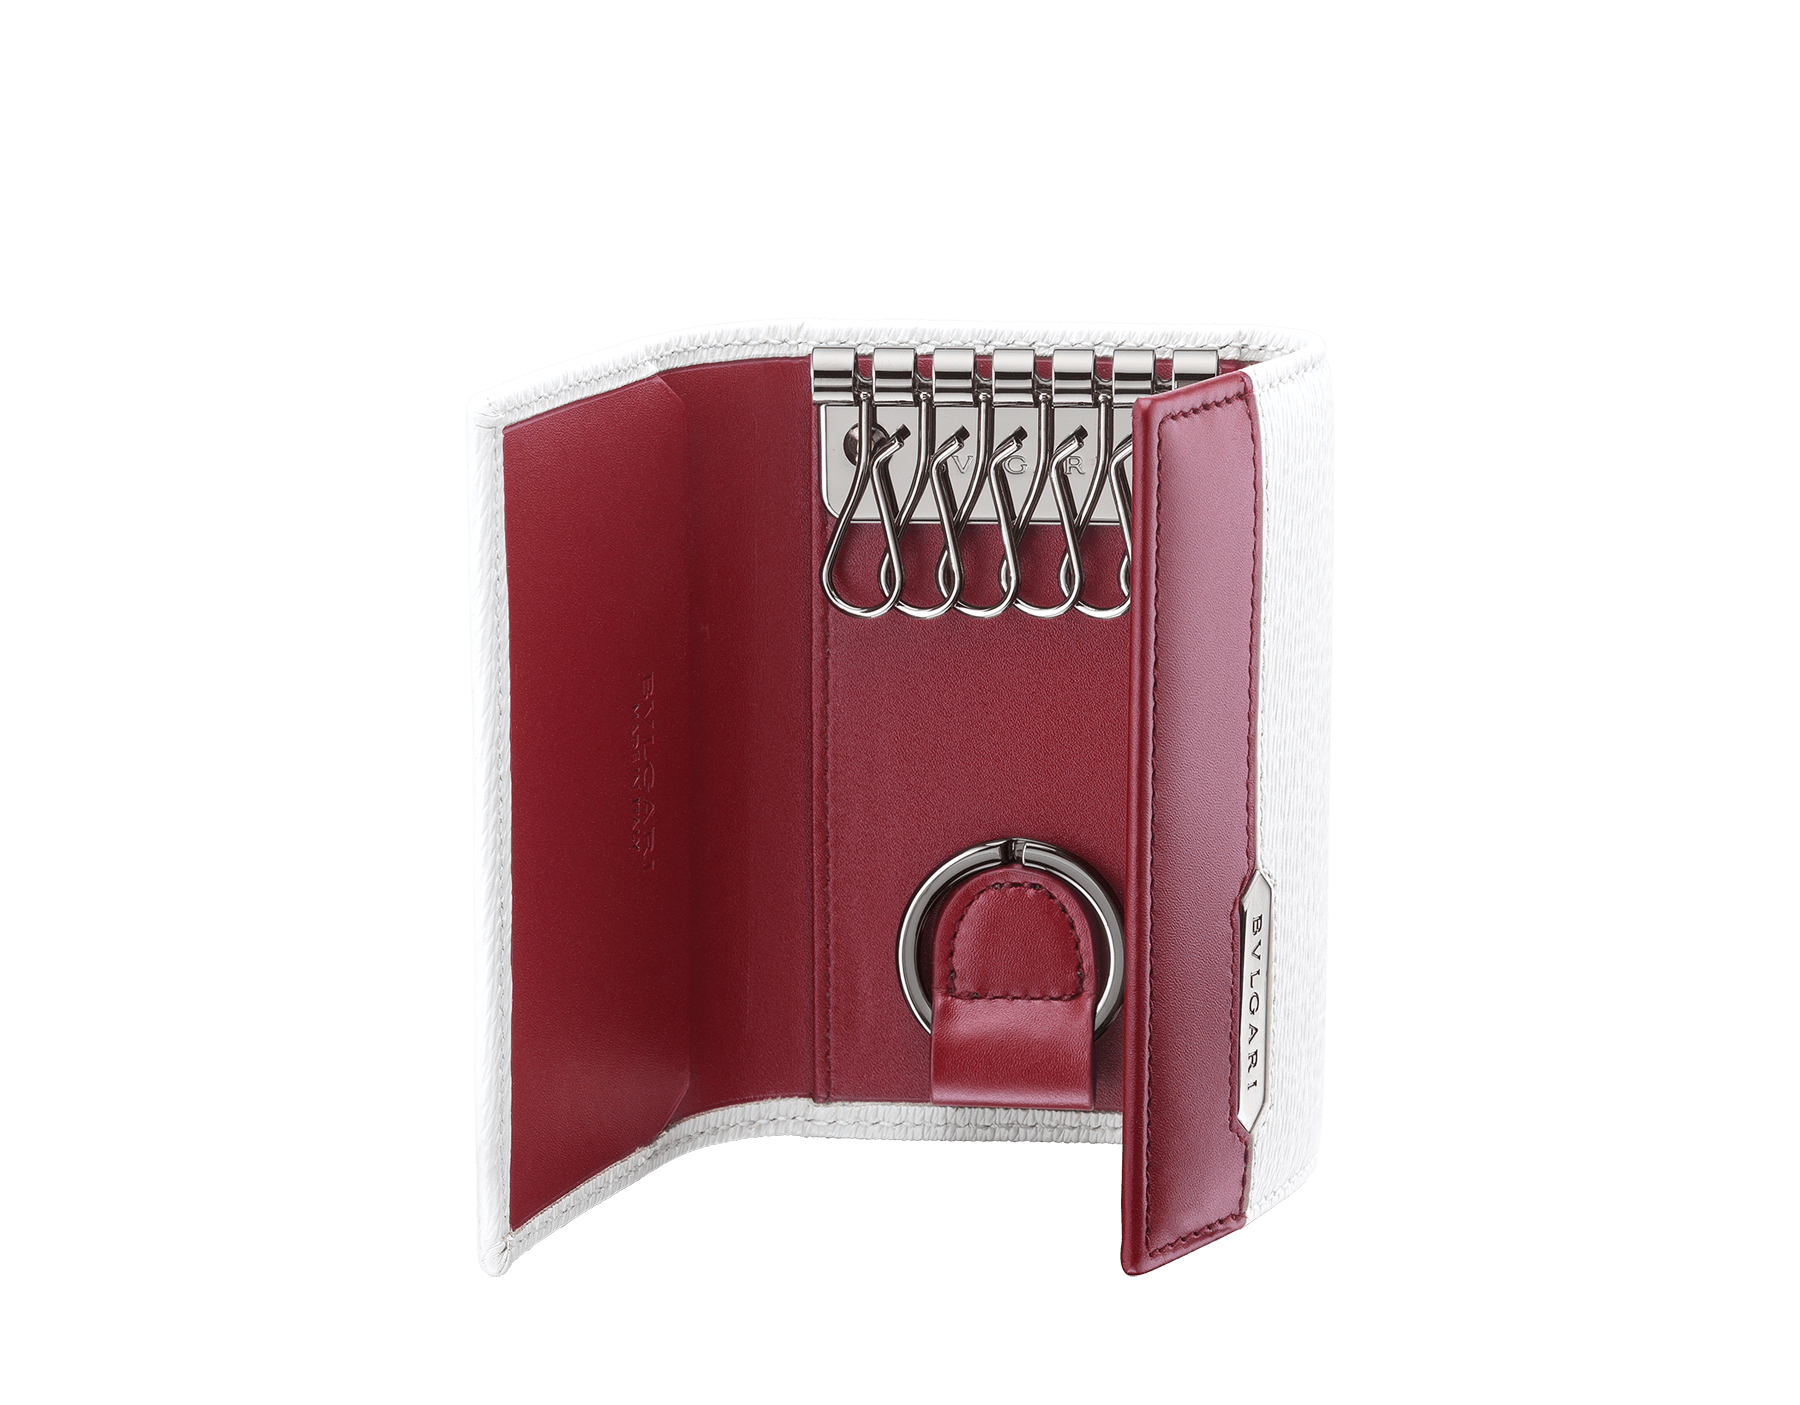 Serpenti Scaglie men's key holder in white agate grazed calf leather and roman garnet calf leather. Bvlgari logo engraved on the hexagonal scaglie metal plate finished in dark ruthenium. 288461 image 2